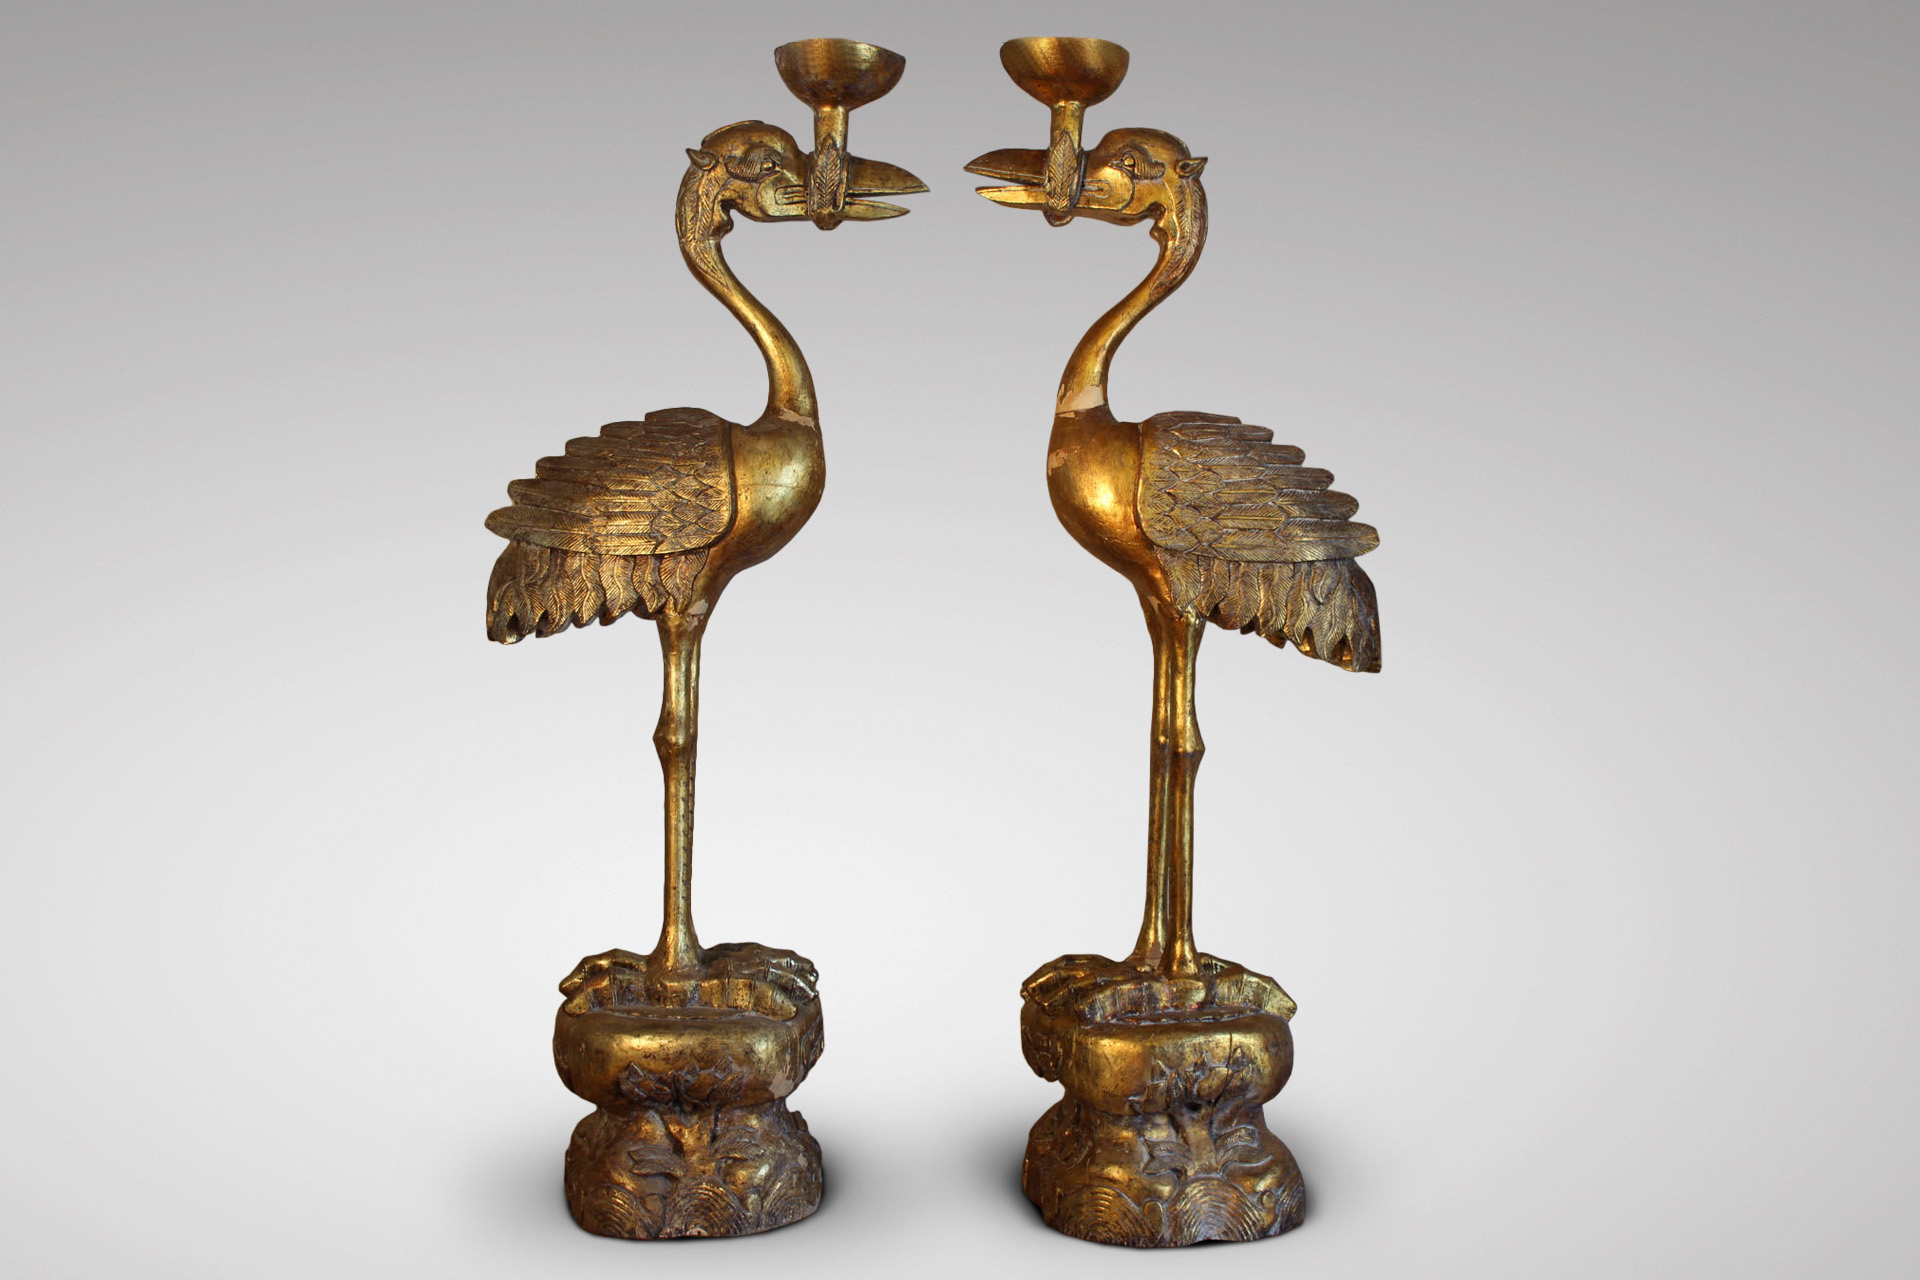 PAIR OF TALL GILTWOOD OSTRICHES